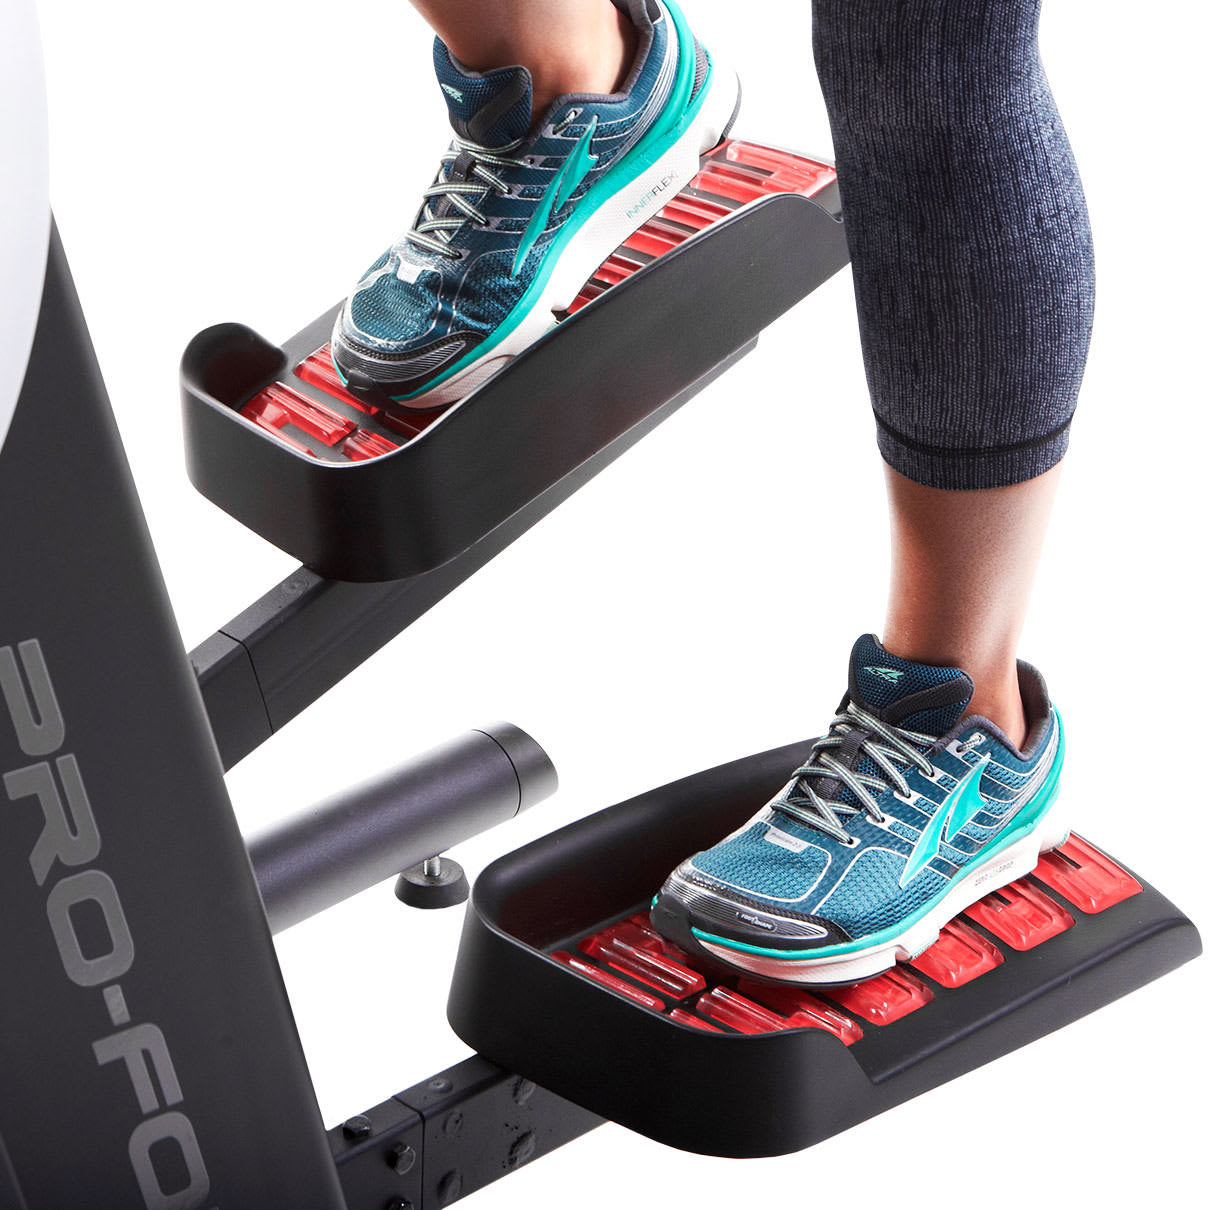 Proform SMART HIIT Trainer Pro gallery image 6